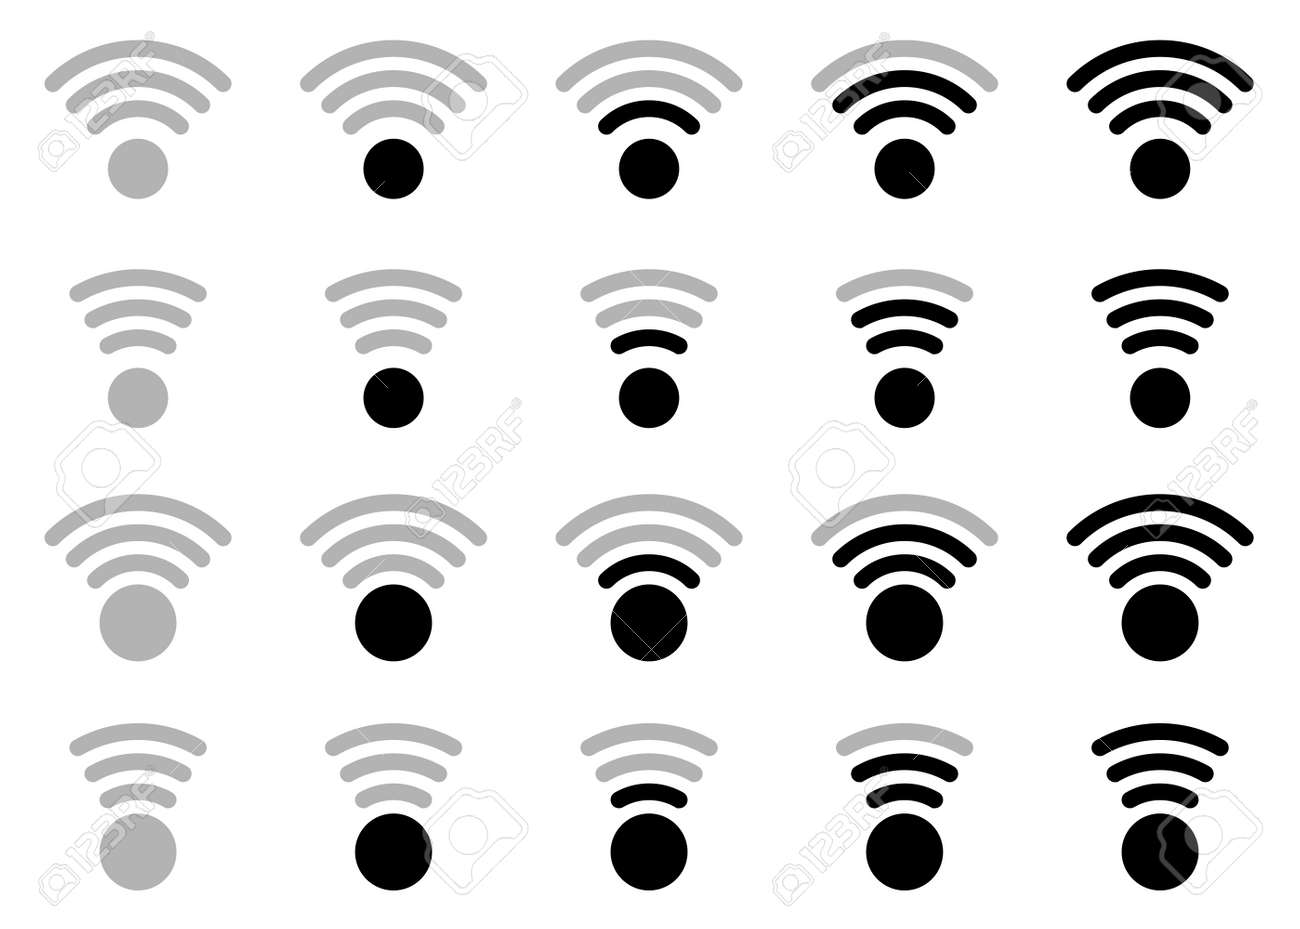 Wireless network icon set - wi fi. Web signs for electronic devices, applications and other resources. Vector isolated elements. - 169197353